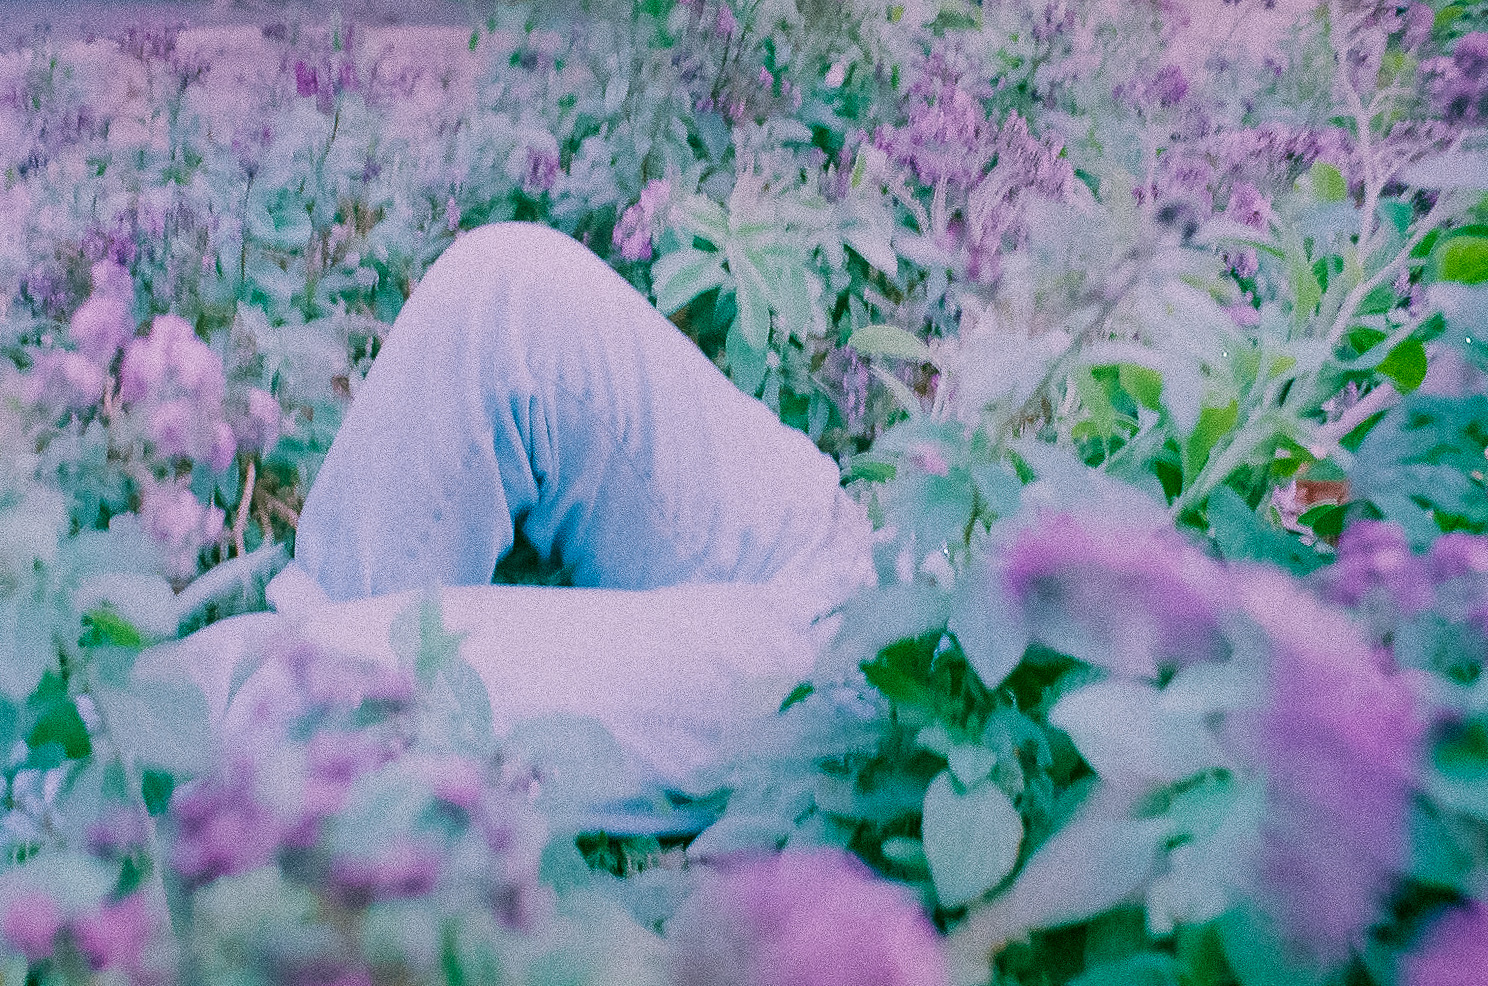 Film photo of girl in flower field